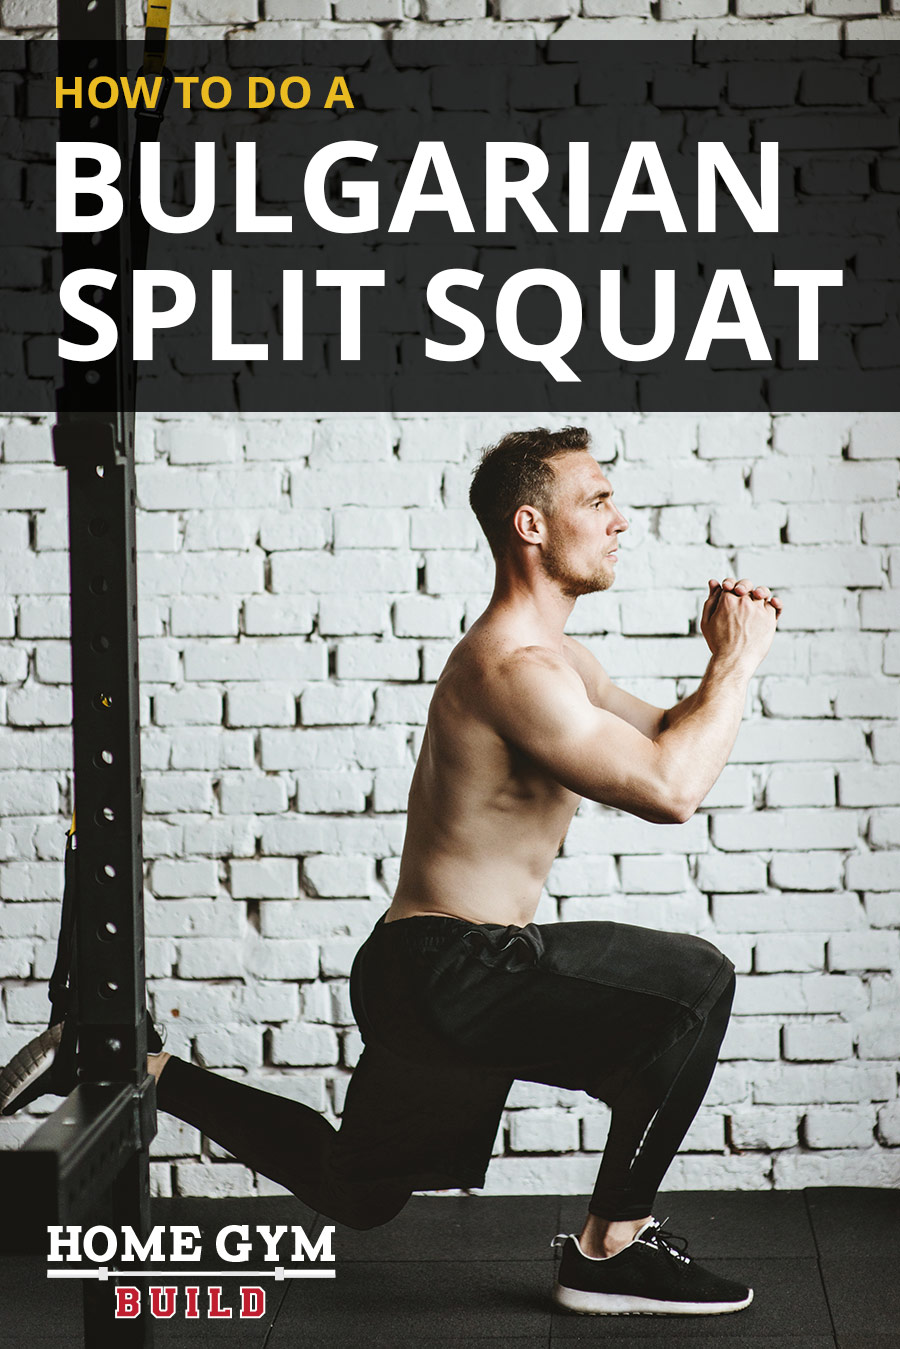 How to do a bulgarian split squat